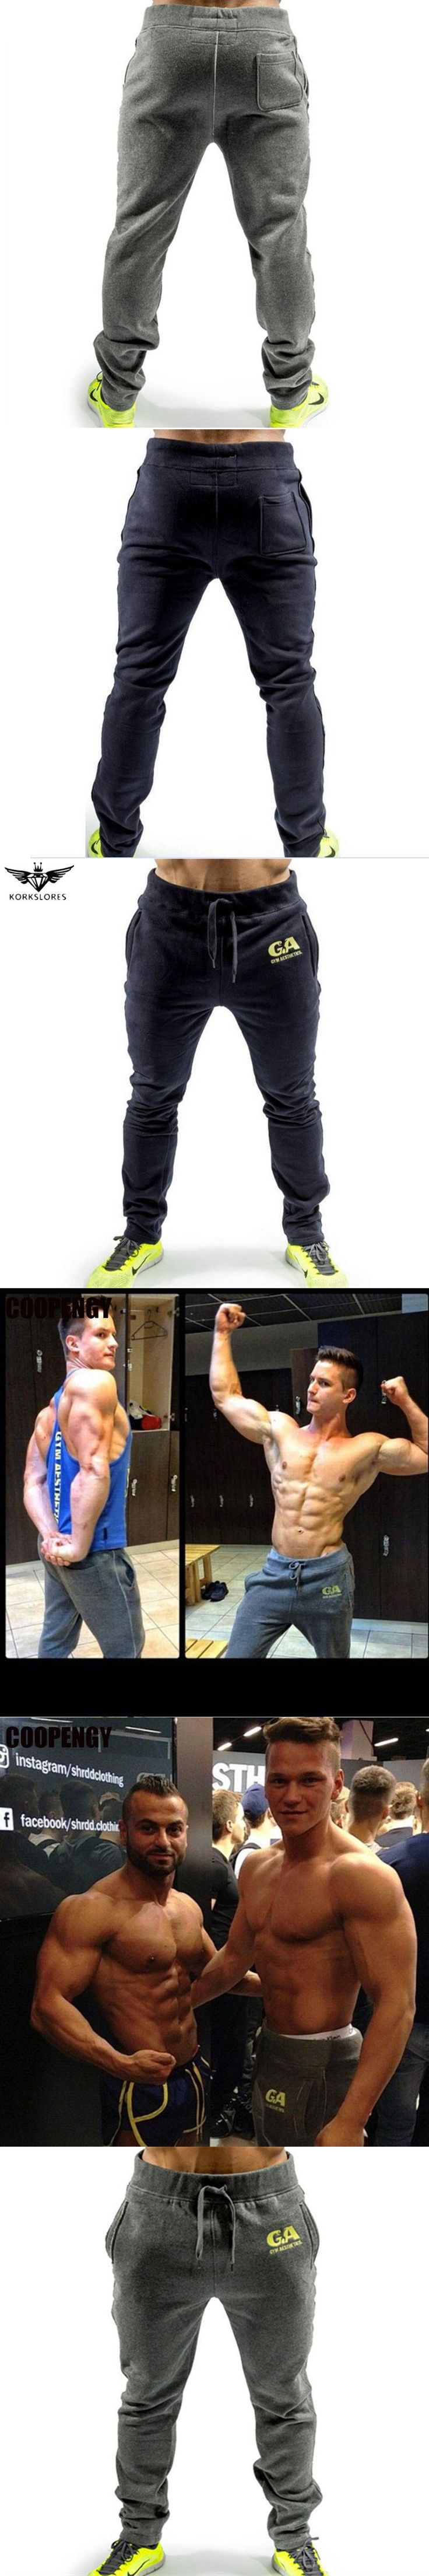 Mens gyms Fitness Sweatpants Pant Male Bodybuilding Workout drawers Casual Elastic Cotton Brand Trousers Joggers Pants for Men